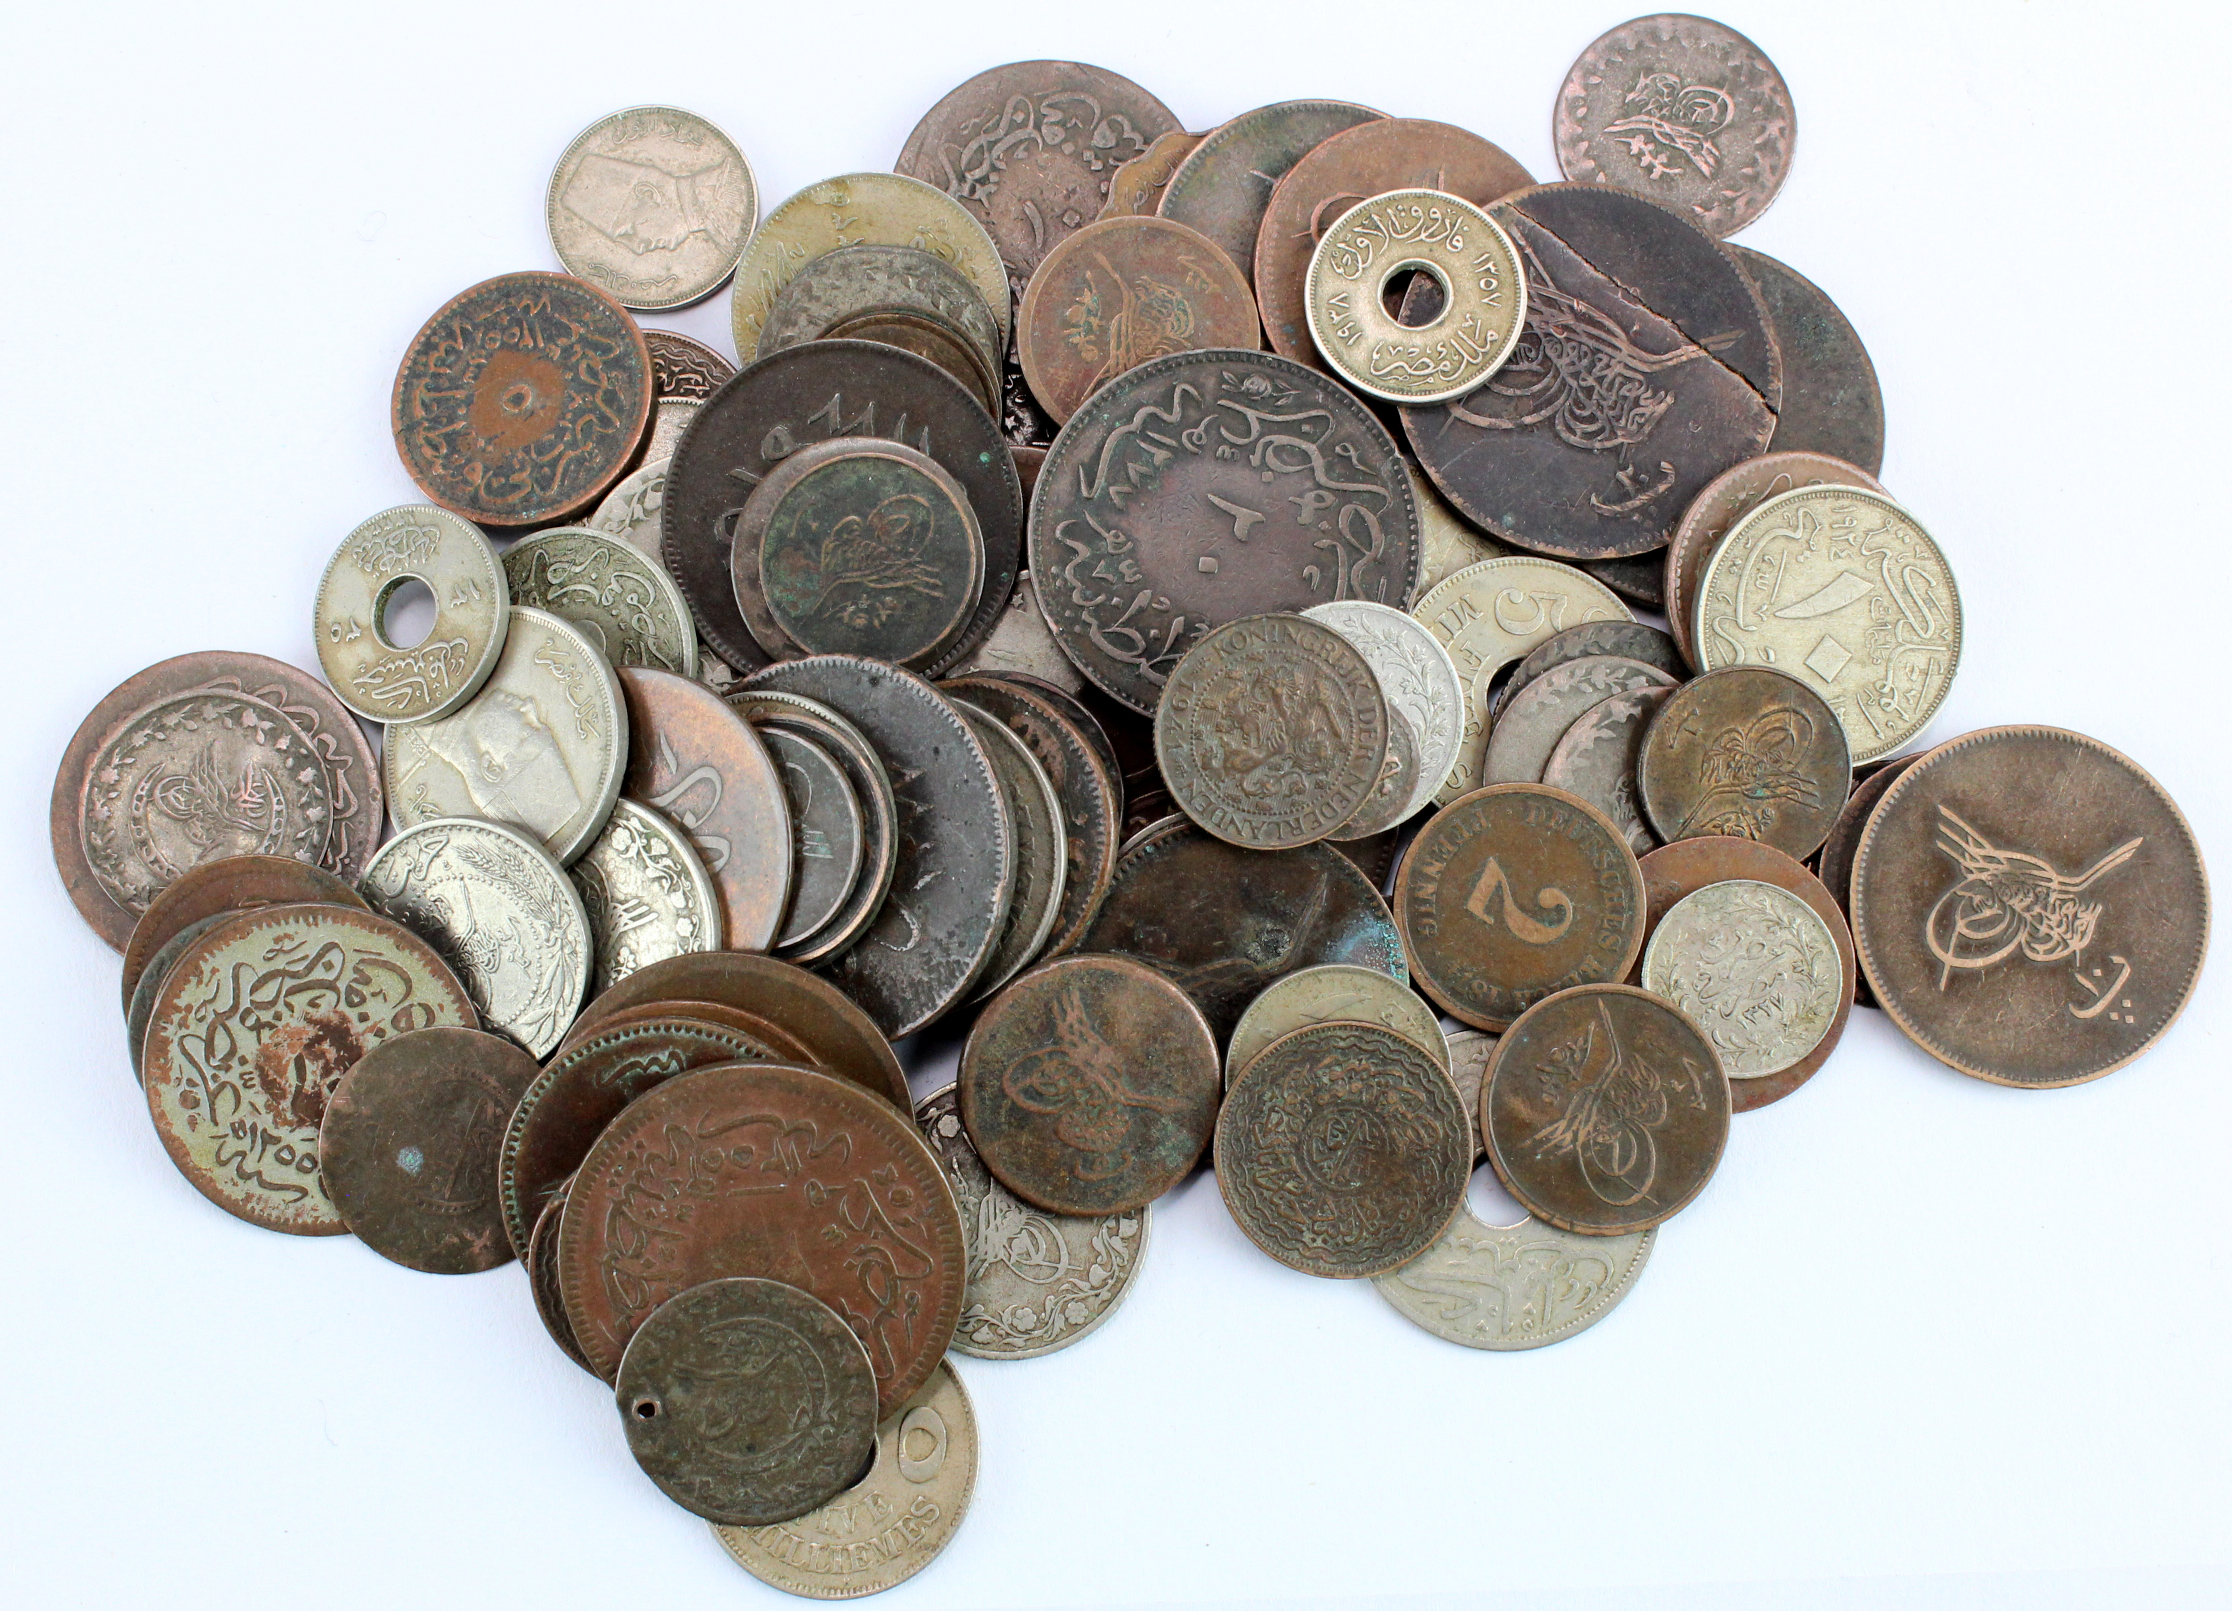 Turkey & Egypt (93) 19th-20thC coinage, mixed grade, a few silver minors noted.